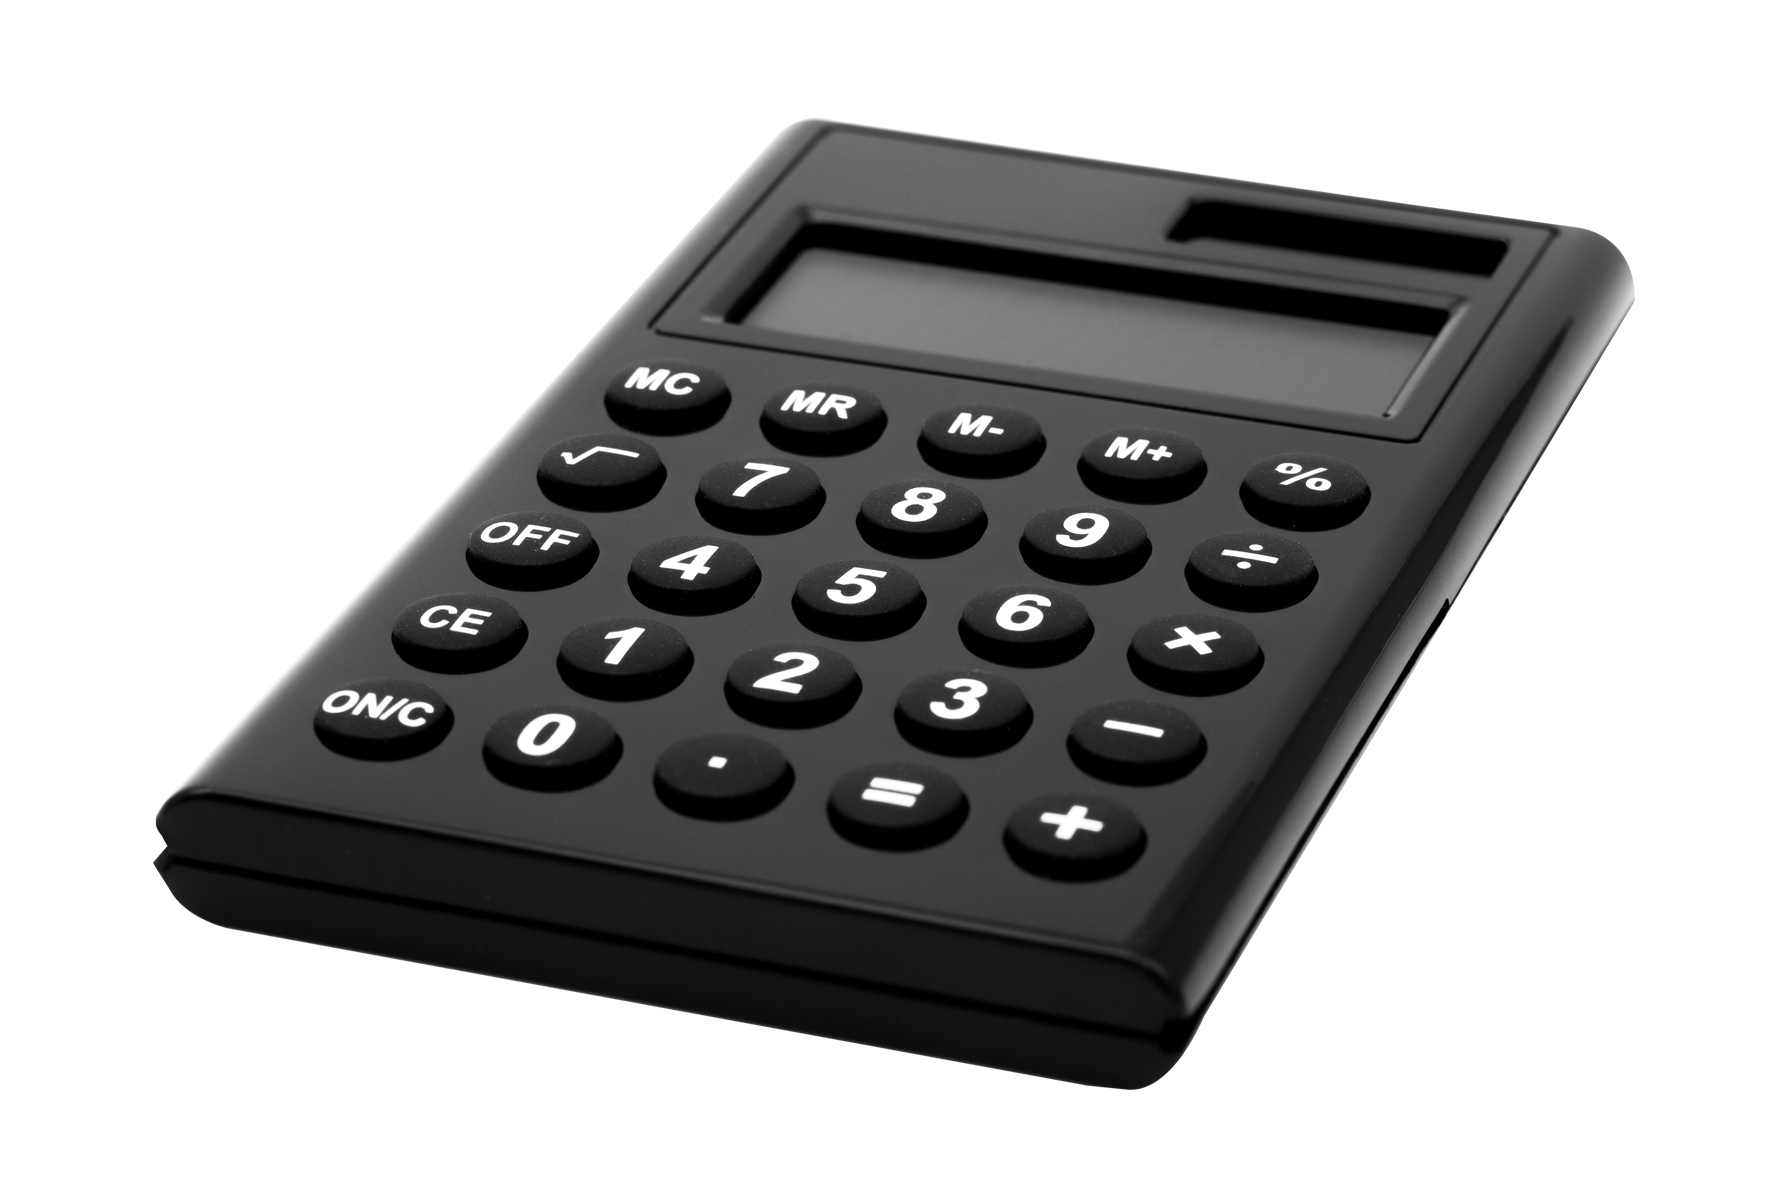 Png image purepng free. White clipart calculator